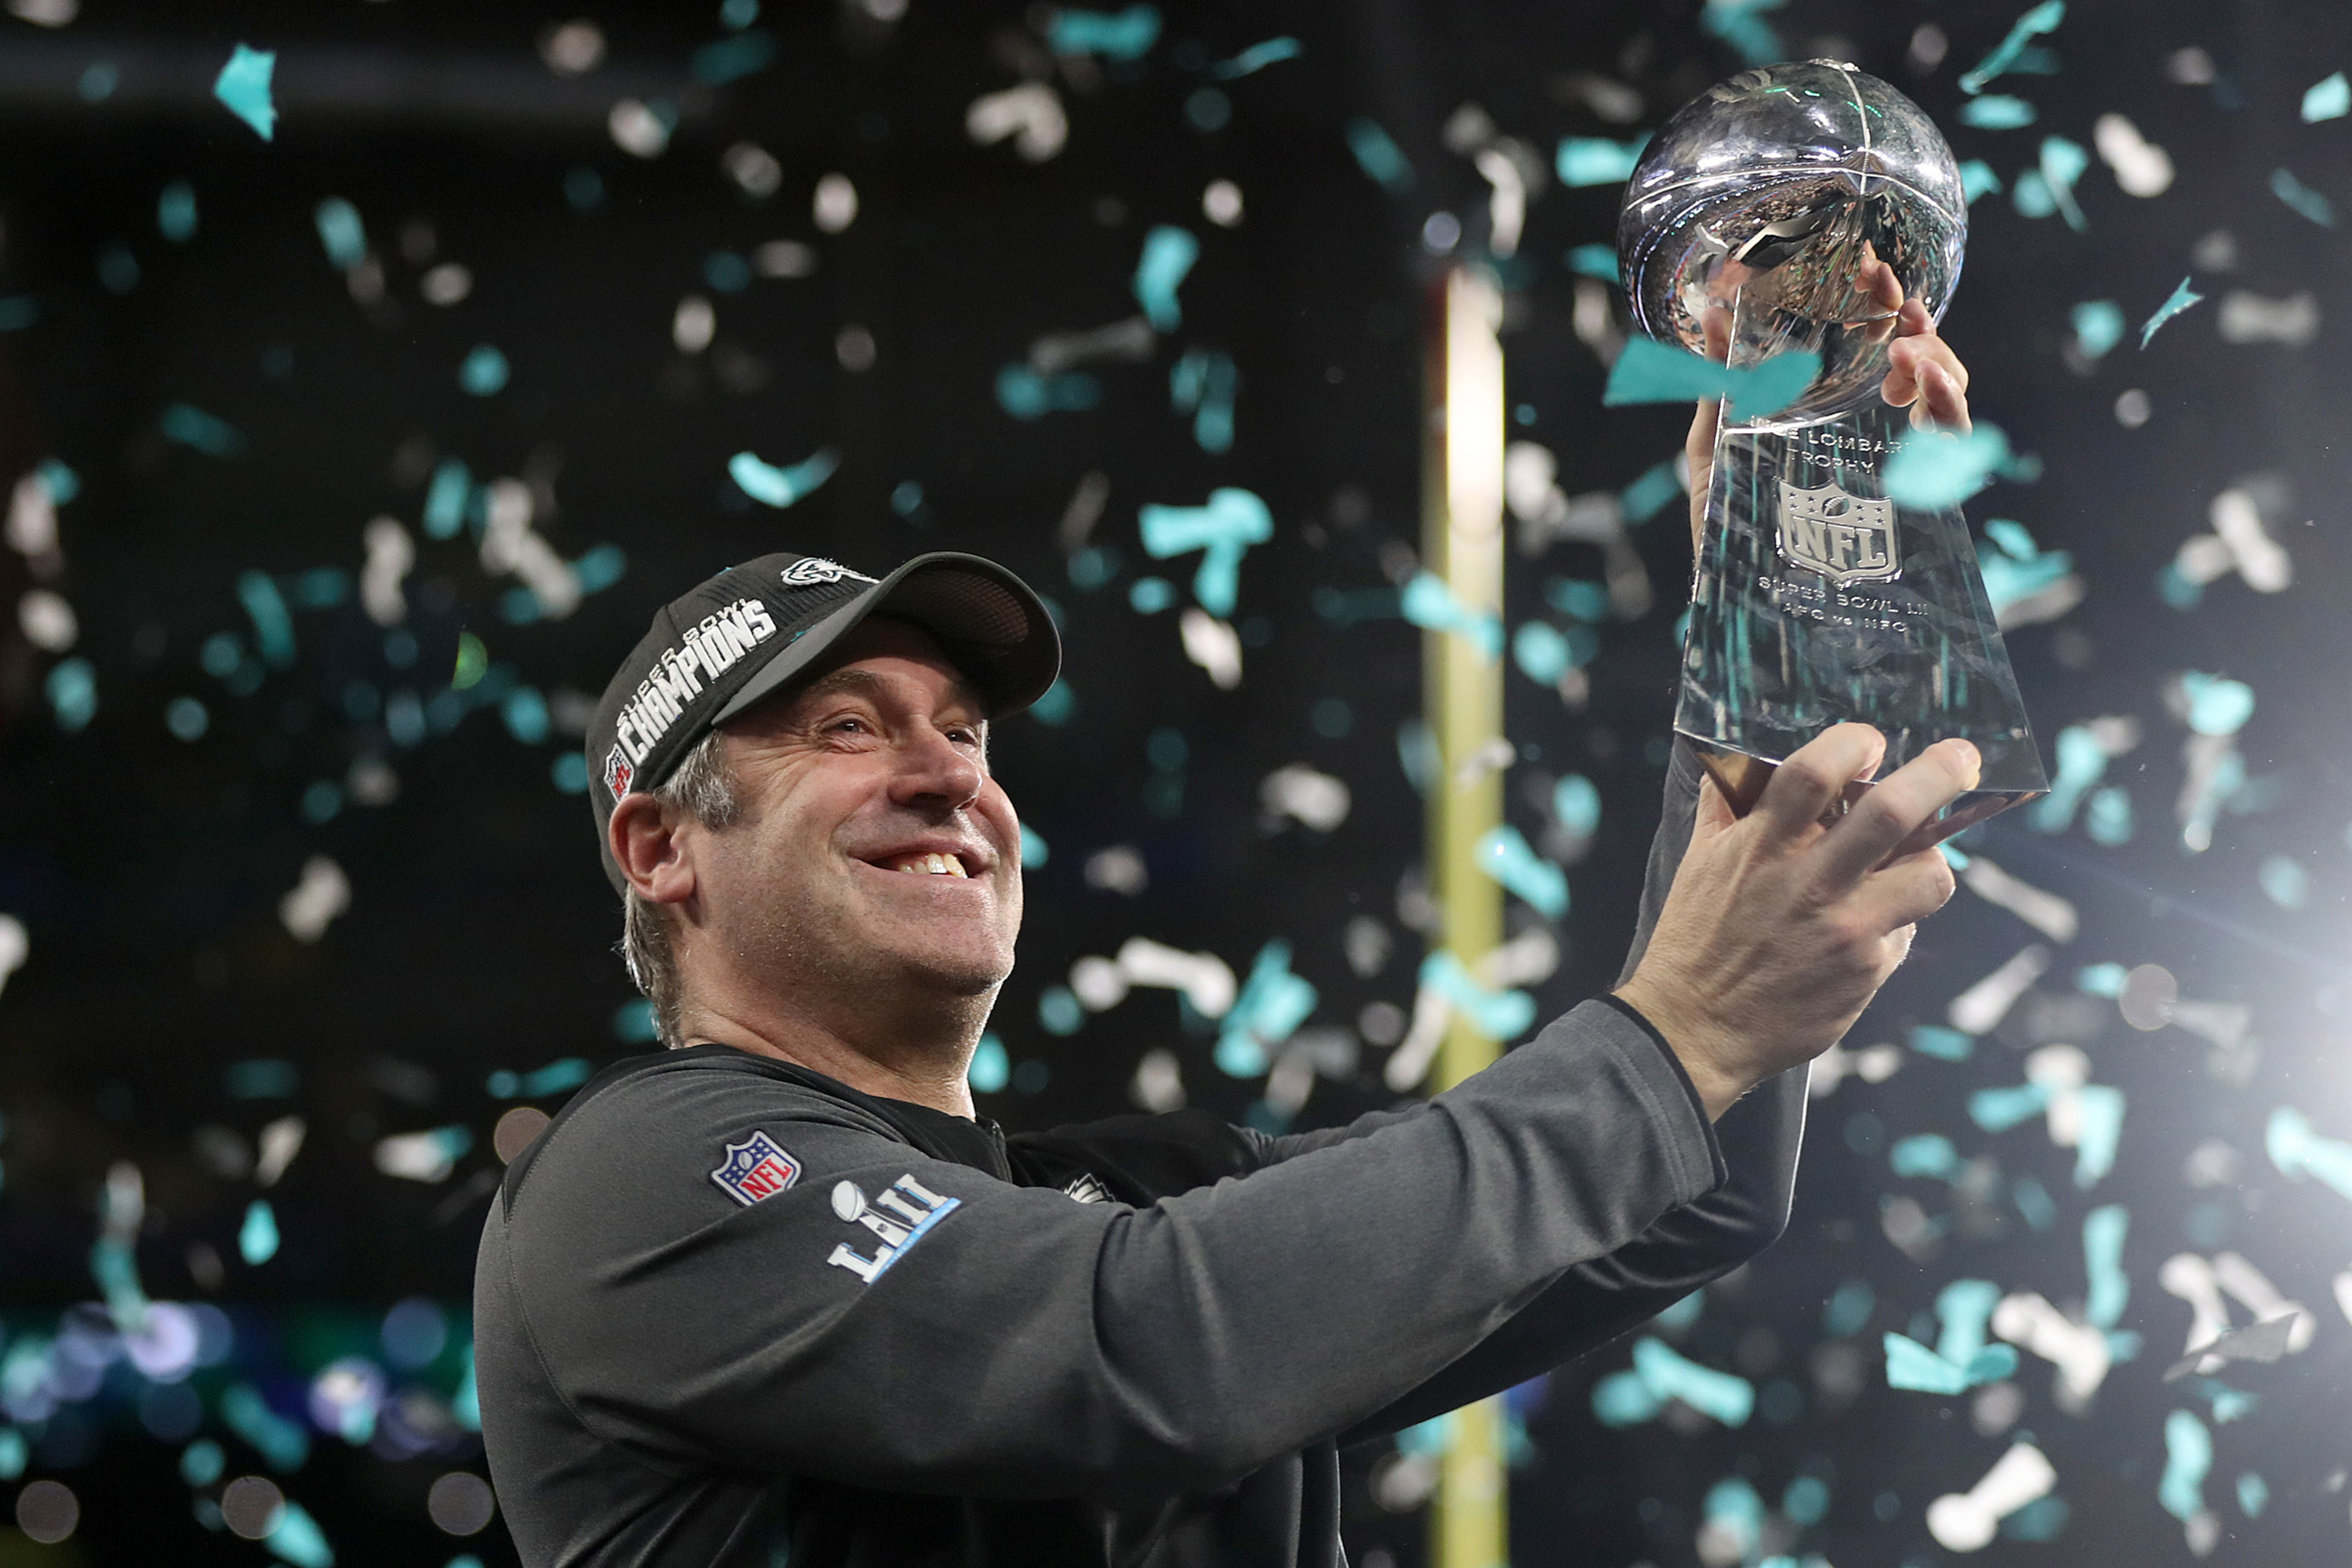 Philadelphia Eagles head coach Doug Pederson hoists up the Lombardi trophy during the ceremony after Super Bowl LII on Sunday.